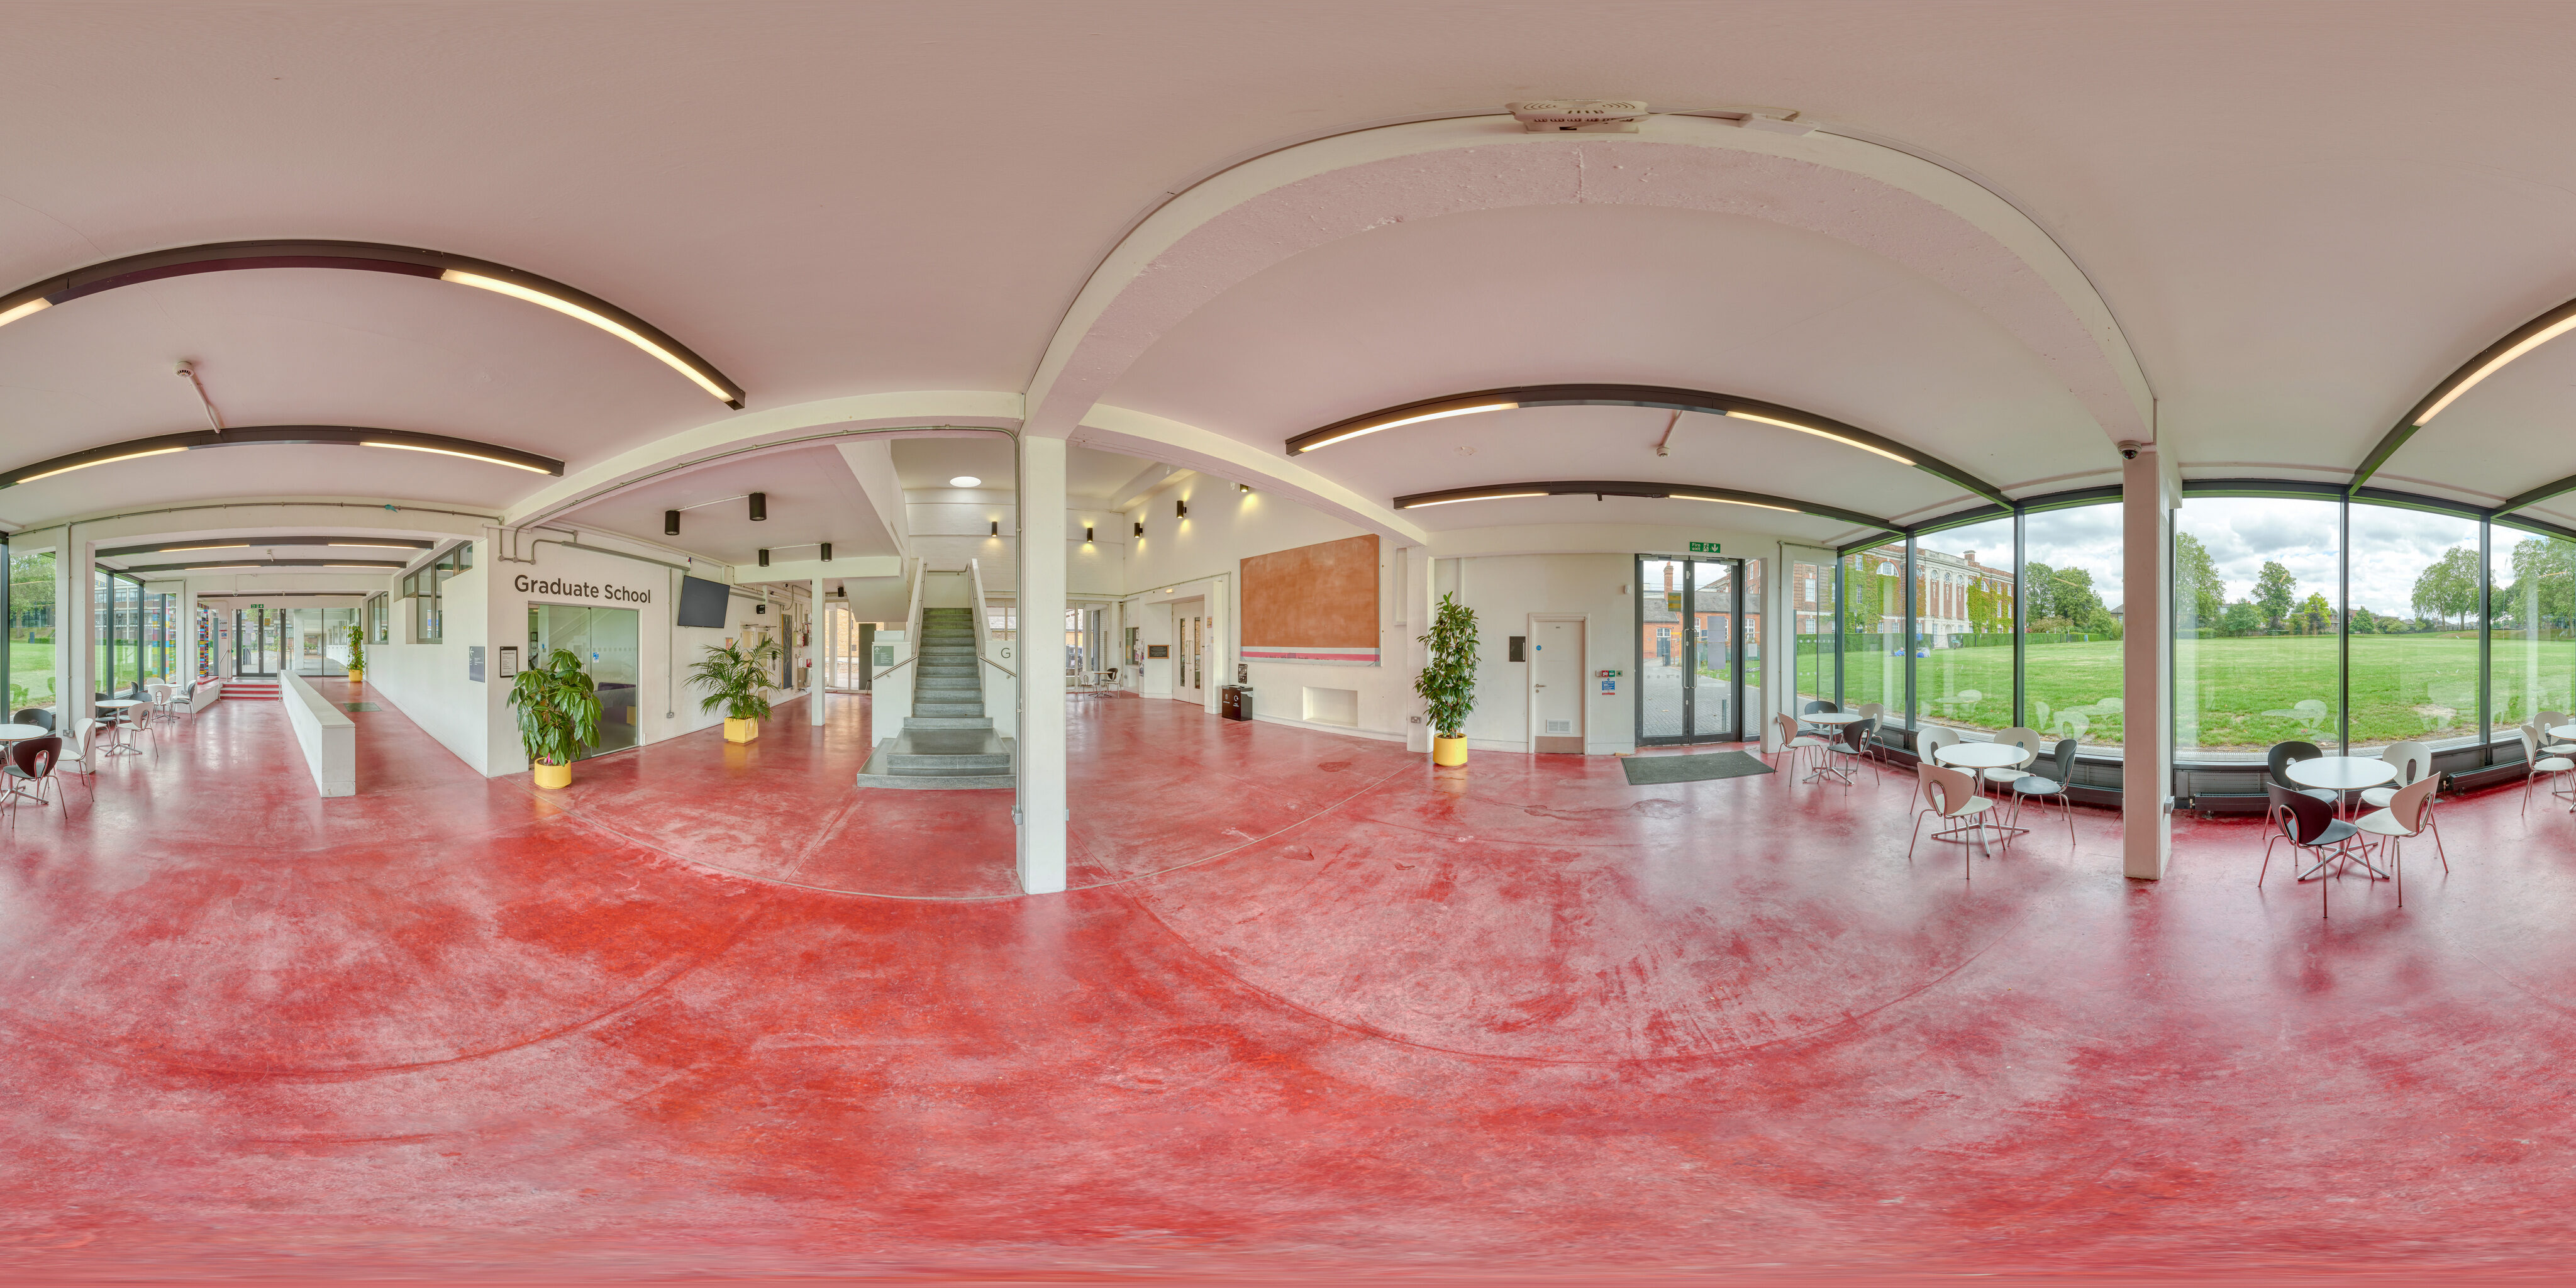 360 of Whitehead Building foyer